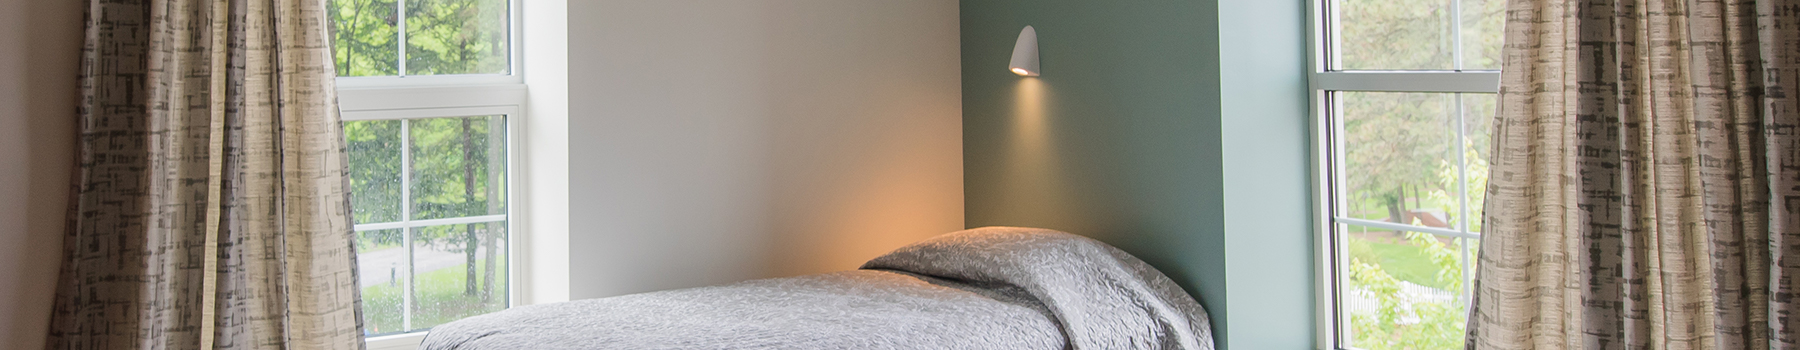 Behavioral health task light in an airy bedroom with windows